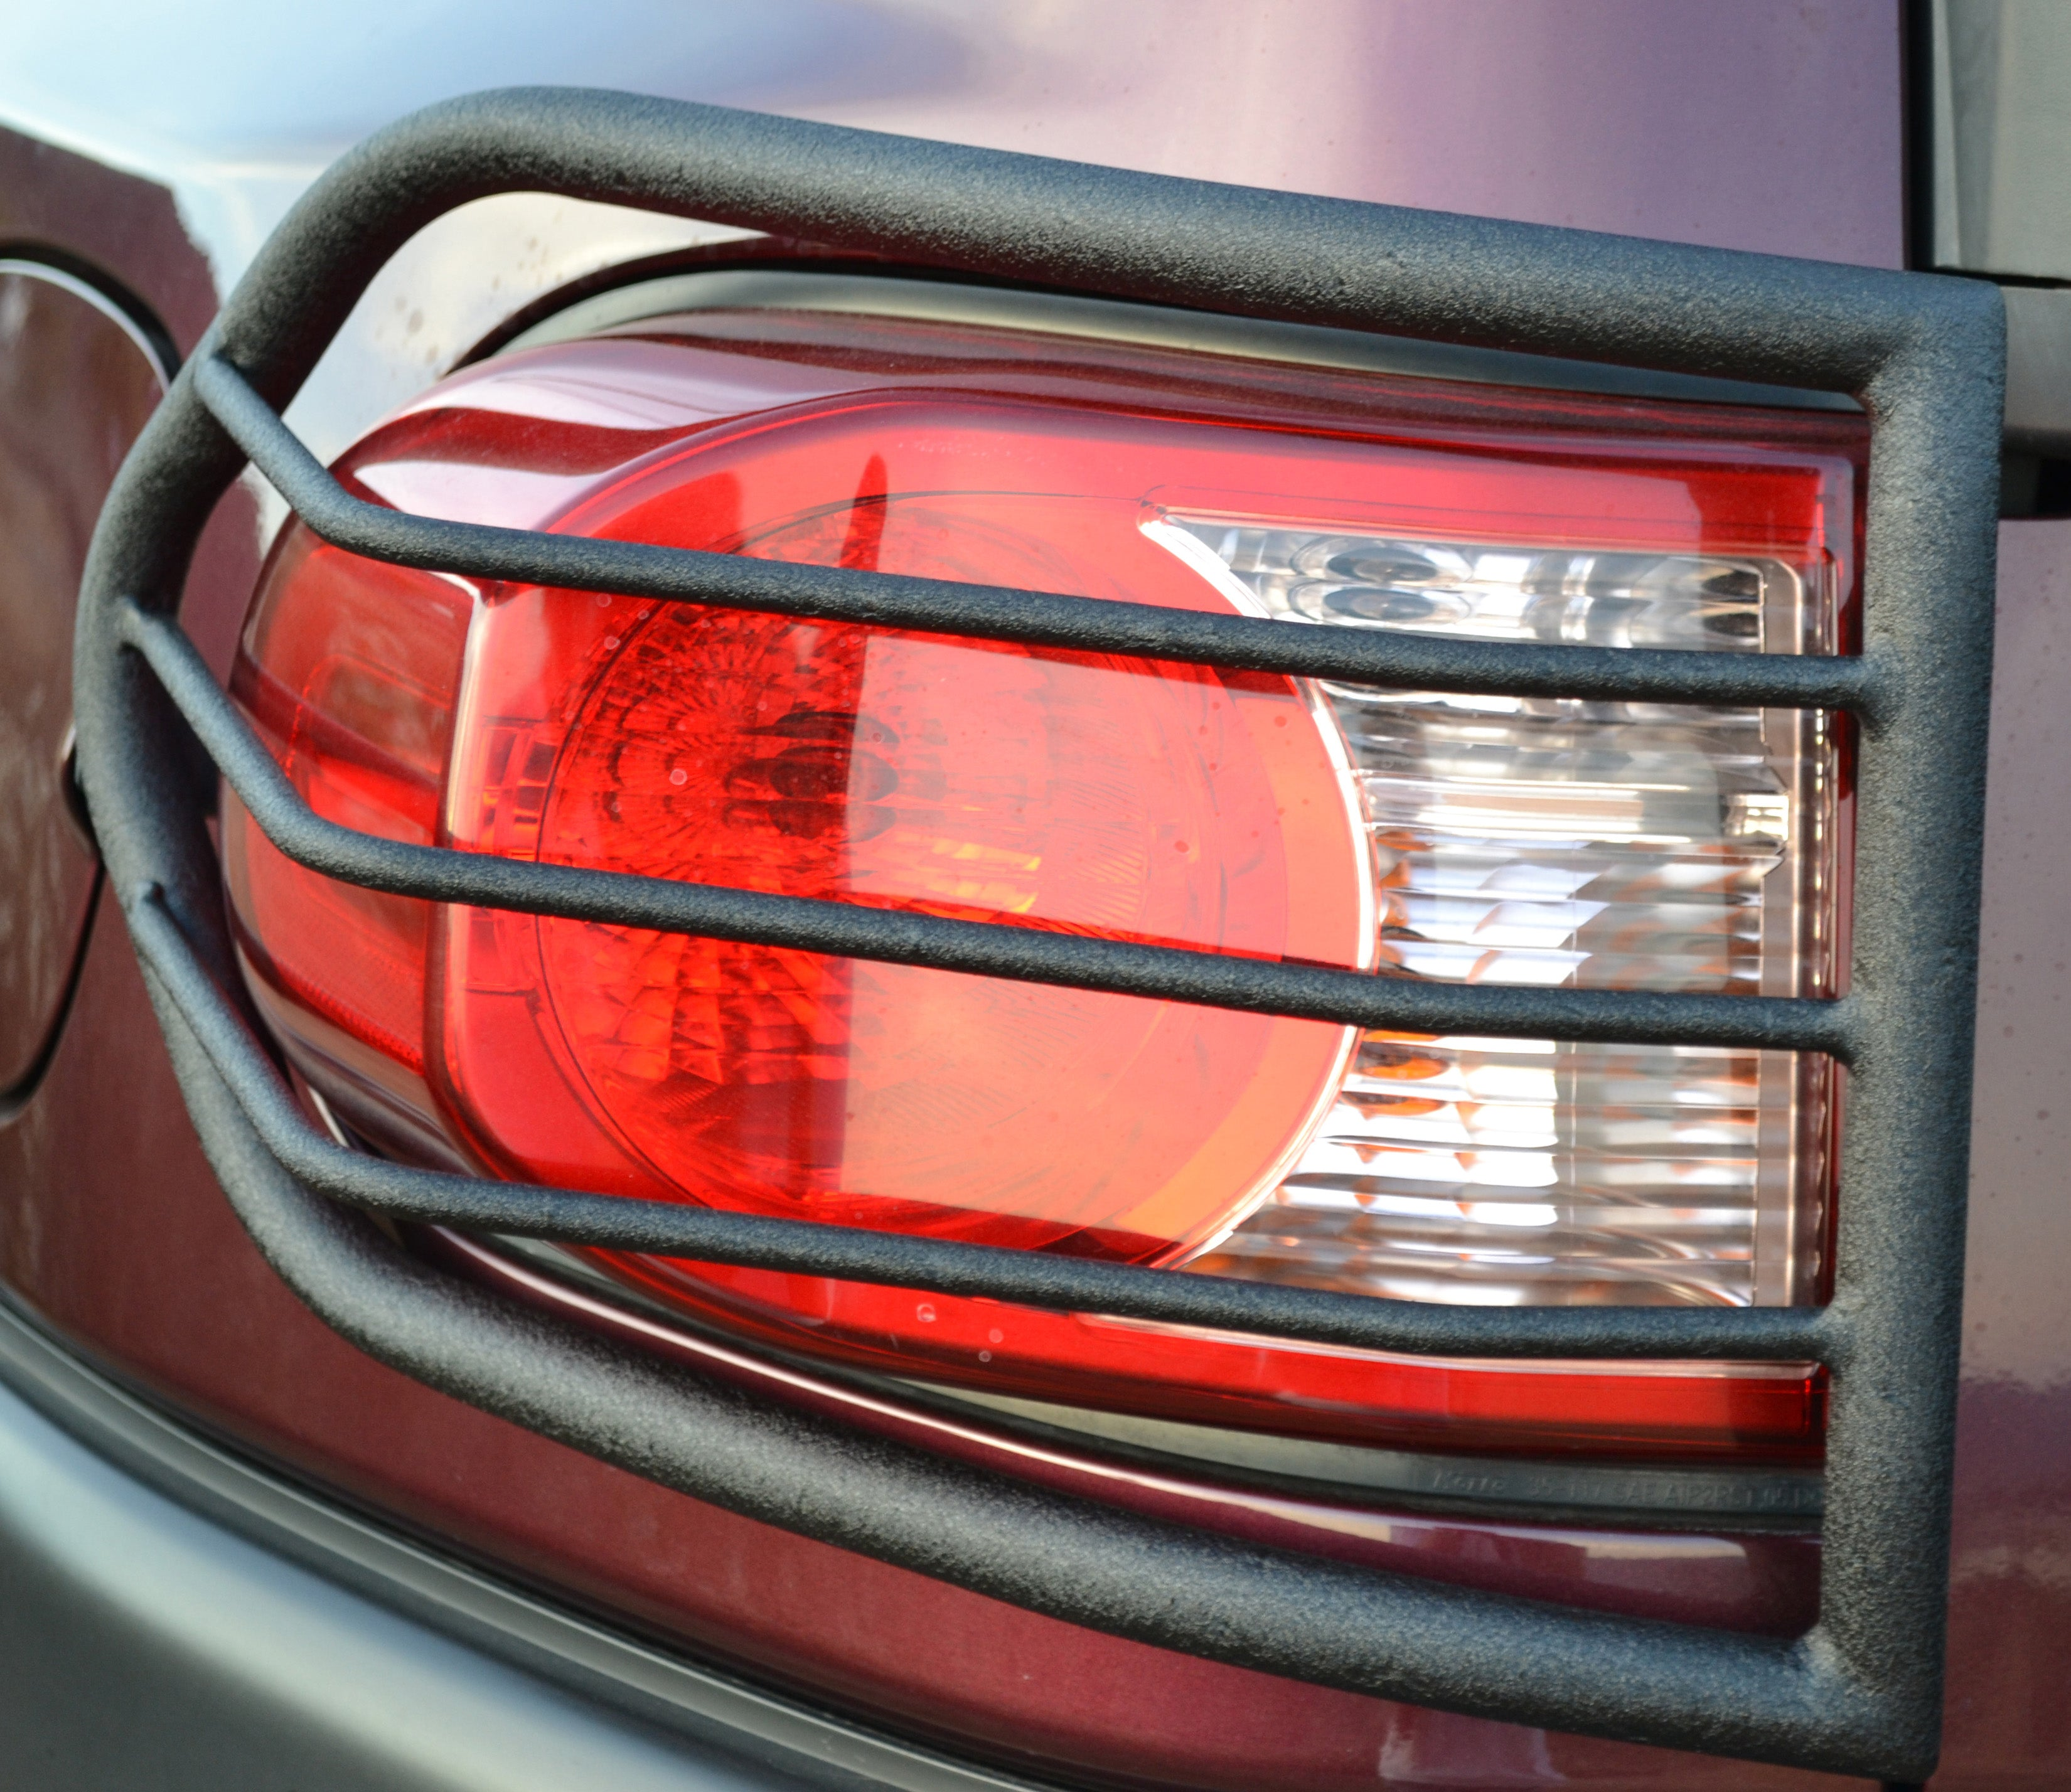 Body Armor 2007-2014 Toyota Fj Cruiser Accessories Tail Light Guard Not Applicable FJ-7135